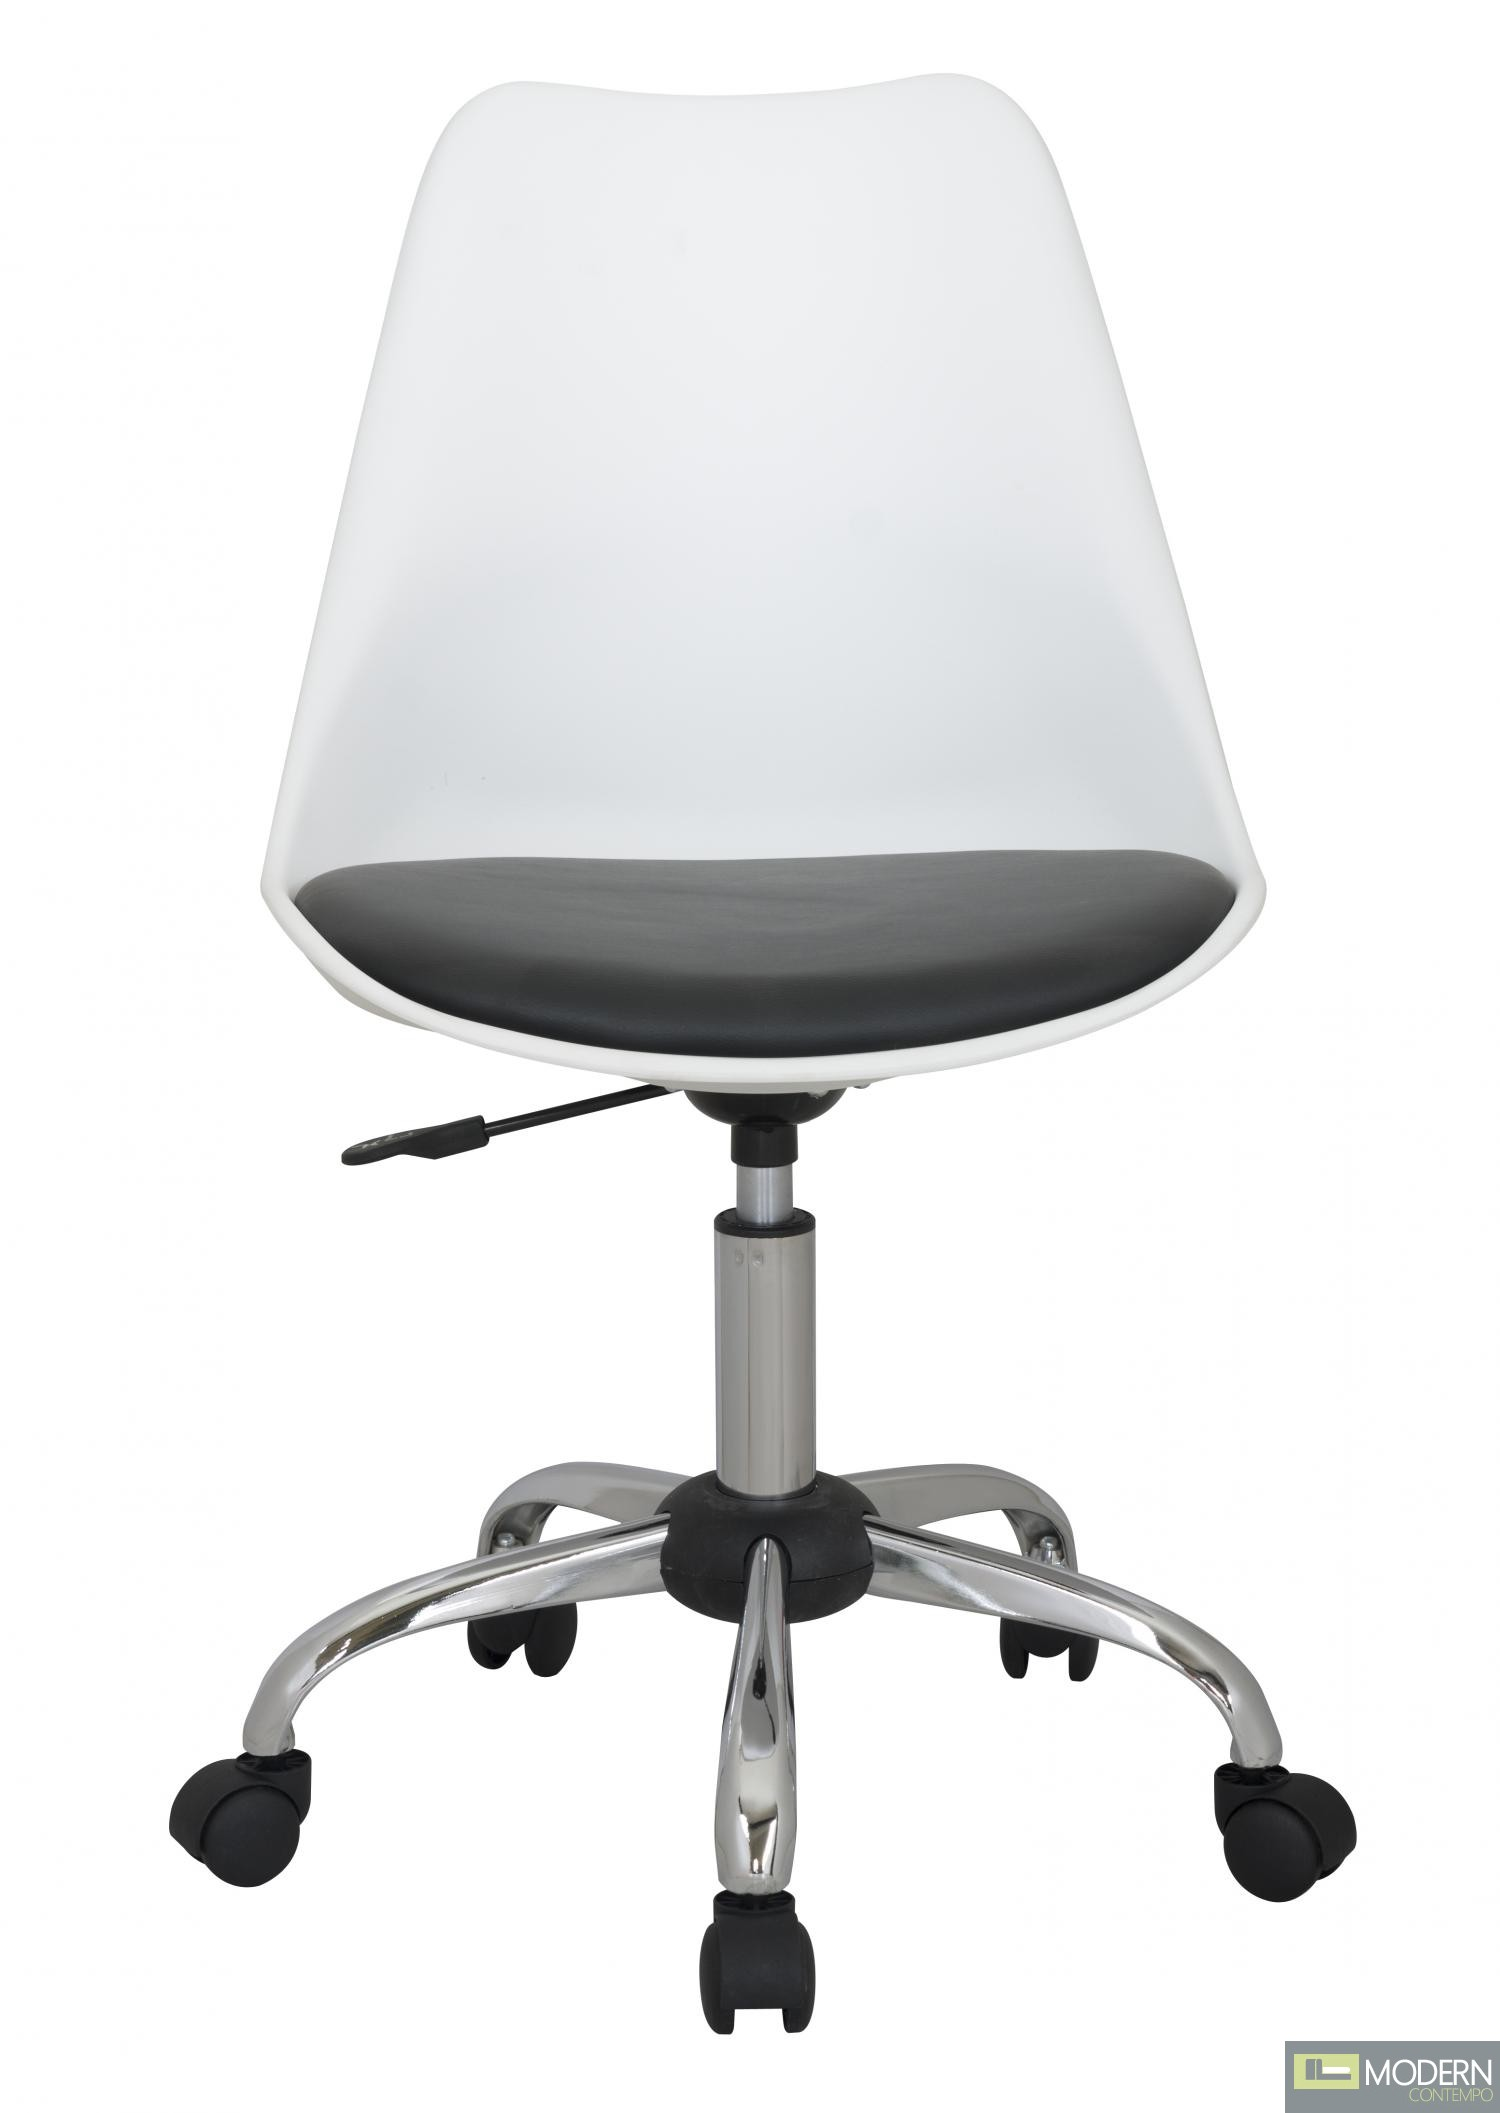 Backless Pneumatic Gas Lift Adjustable Stool w3 Extra  : 1090 CCH BLKF from moderncontempo.com size 1500 x 2113 jpeg 123kB